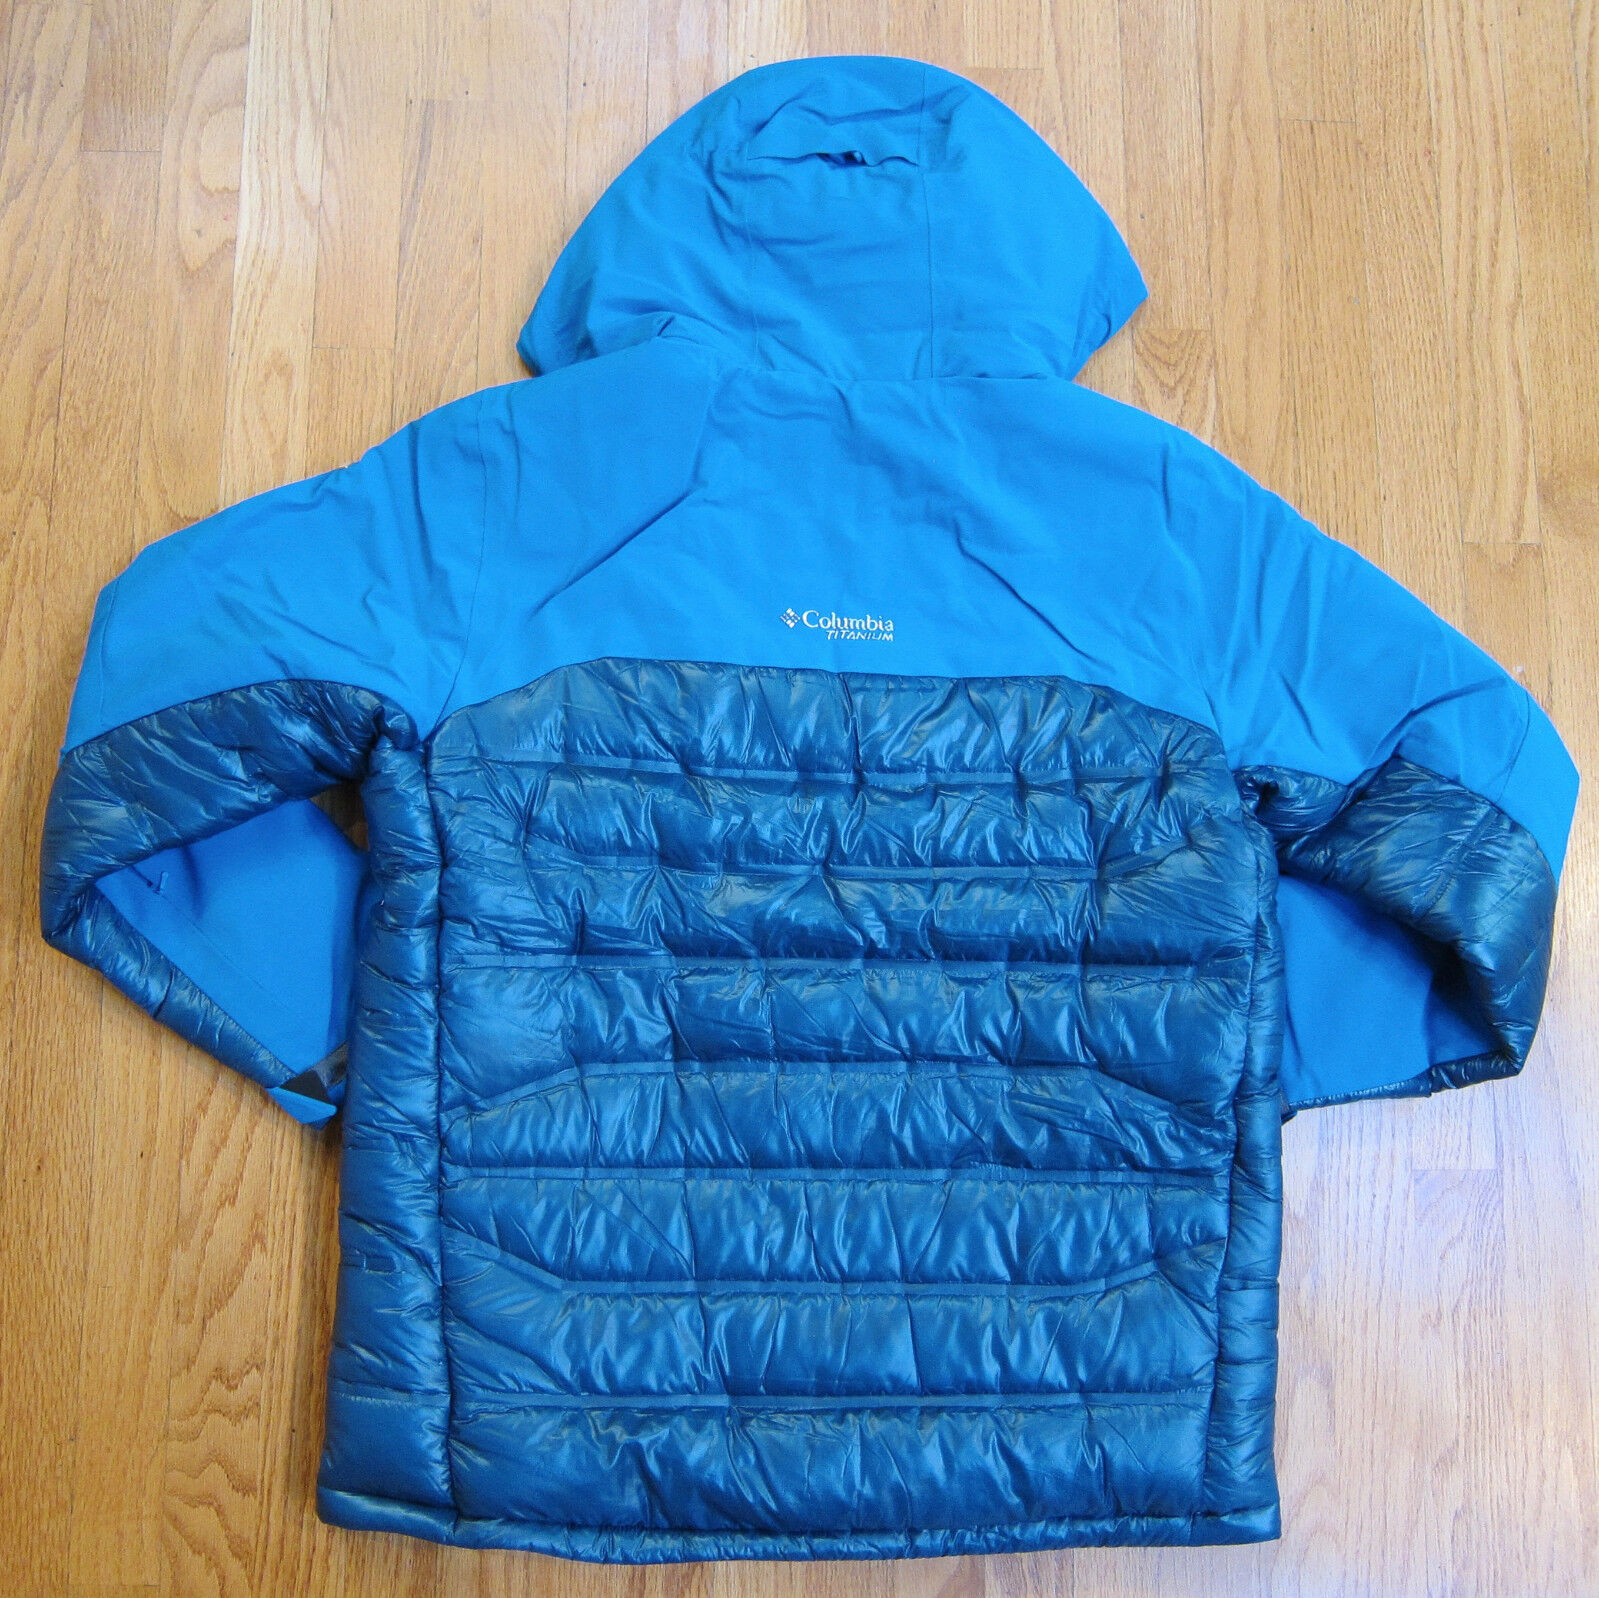 Columbia Titanium Heatzone 1000 Turbodown Hooded Jacket Omniheat 1619811 L  for sale online  dde32673cc